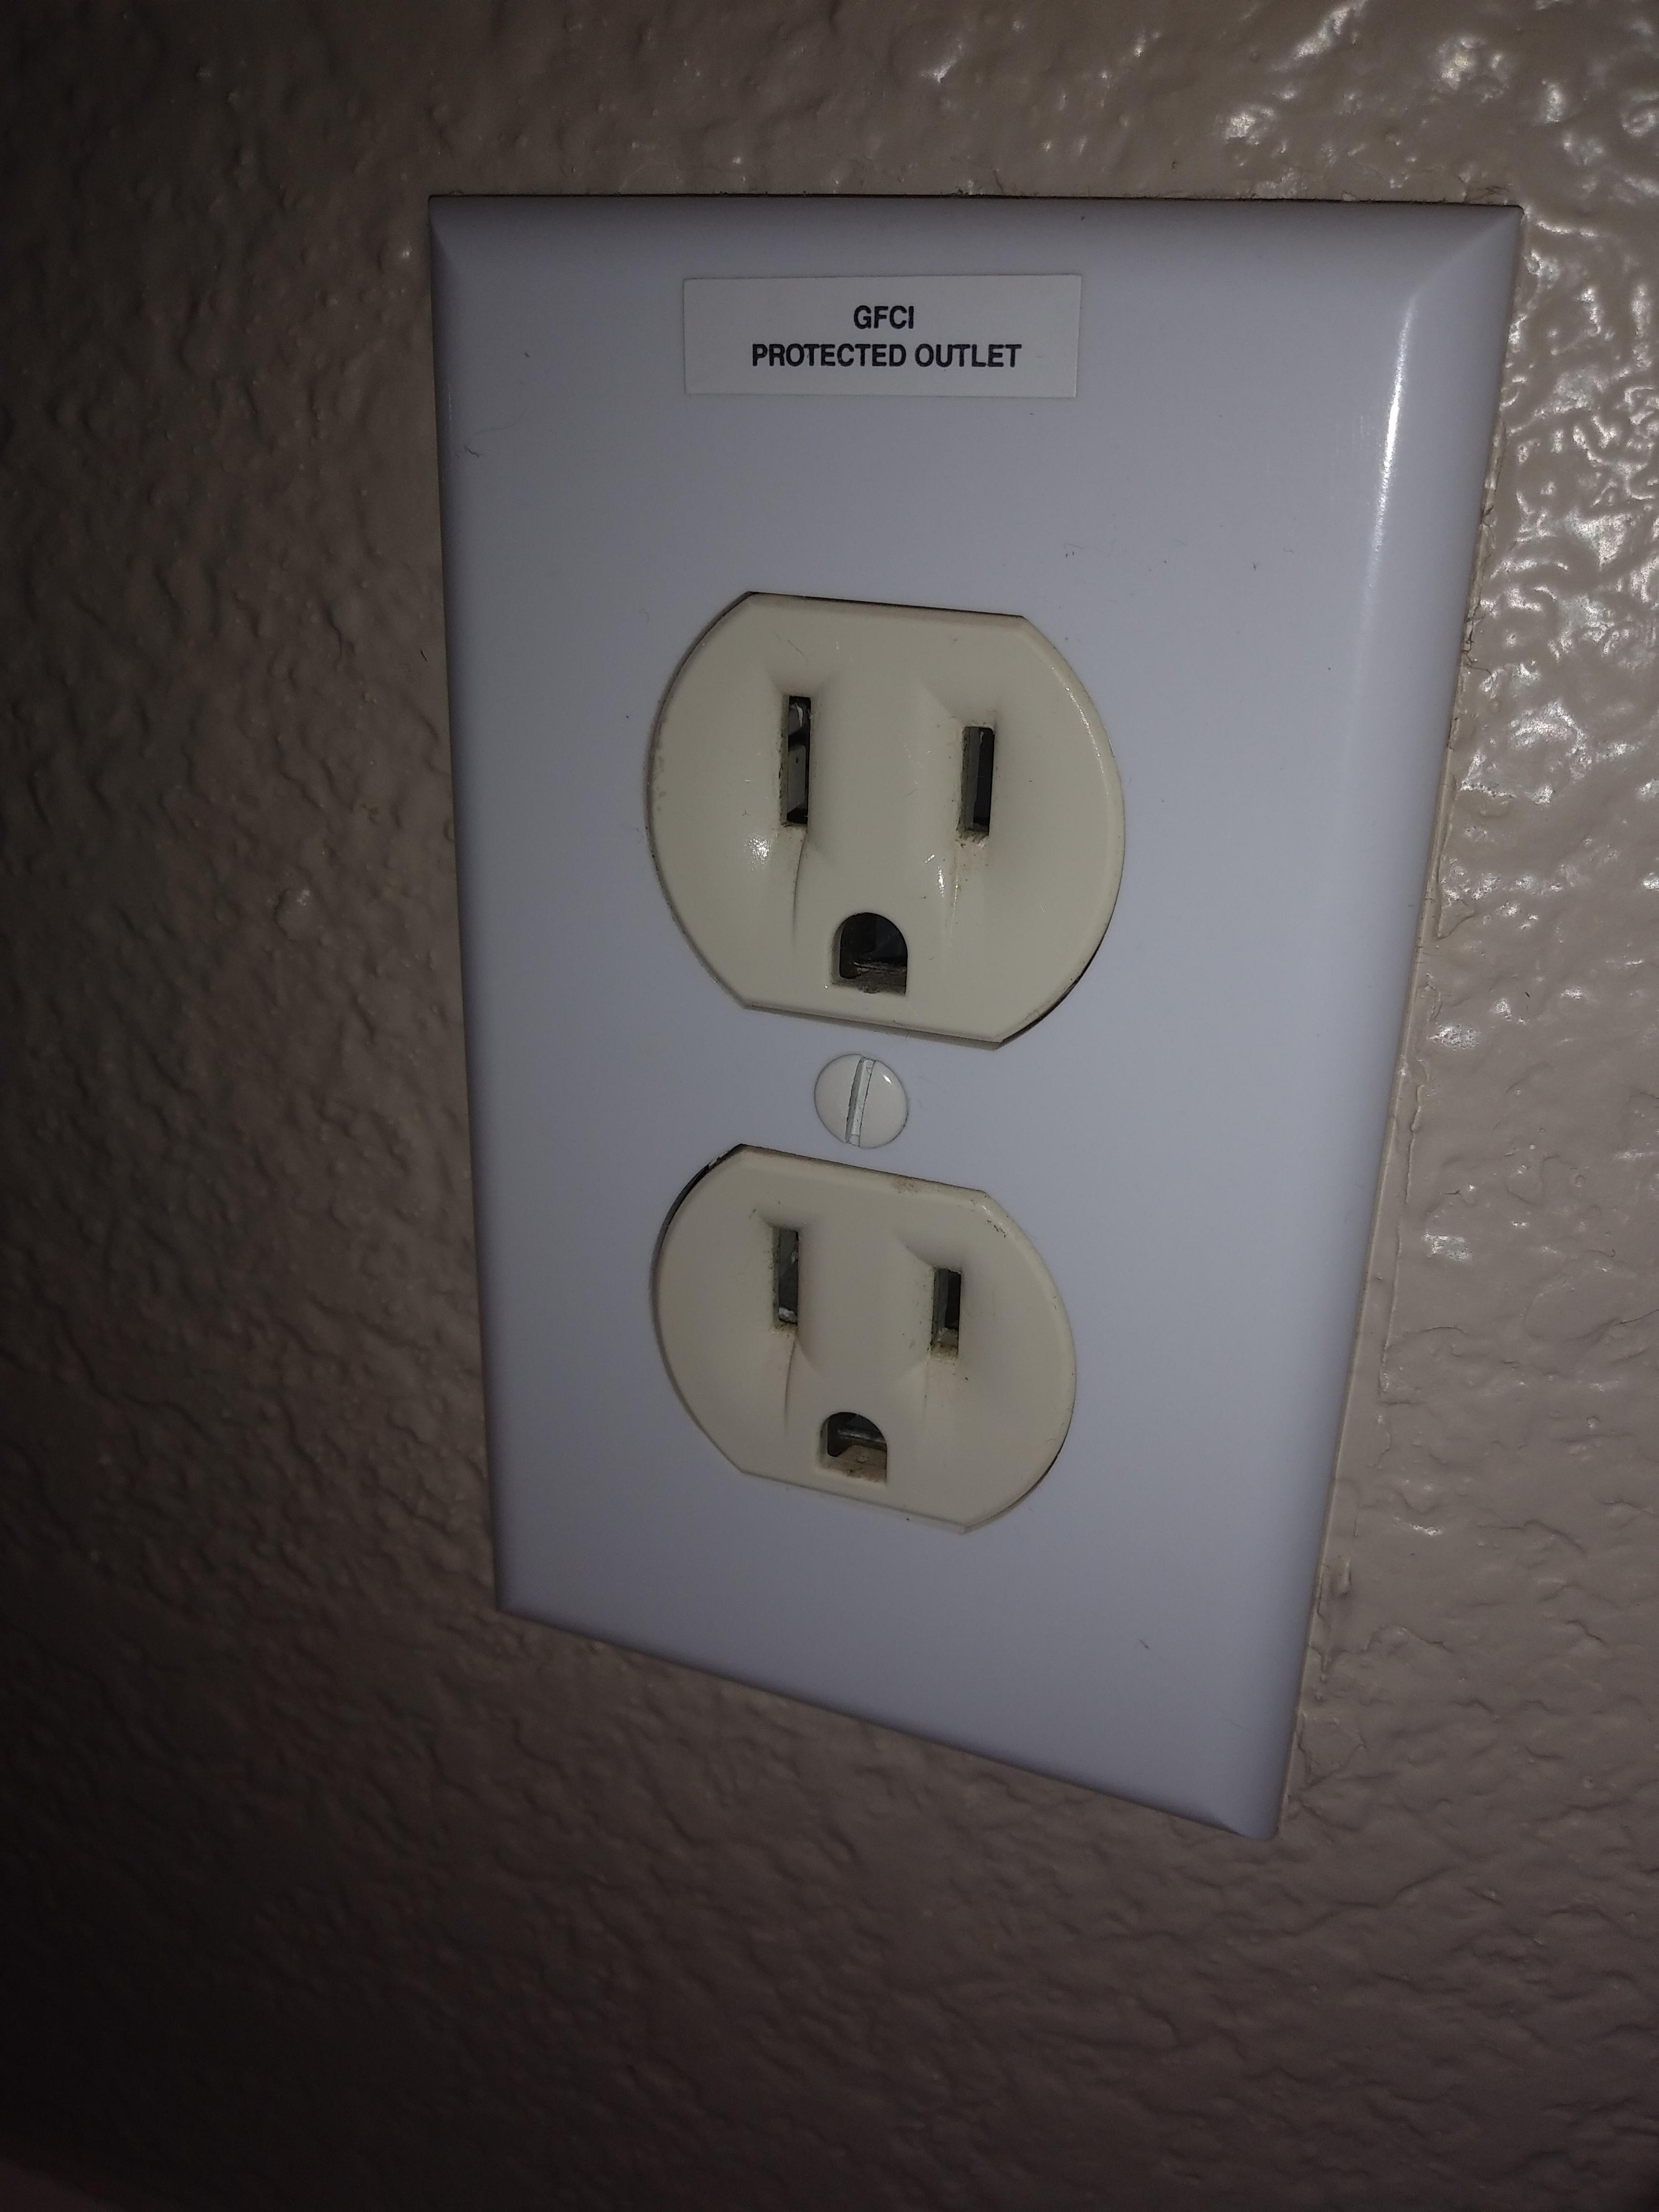 Gfci Protected Outlet Sticker : protected, outlet, sticker, Really, Outlet, Without, Test/reset, Buttons?, Residential, Bathroom., Electricians